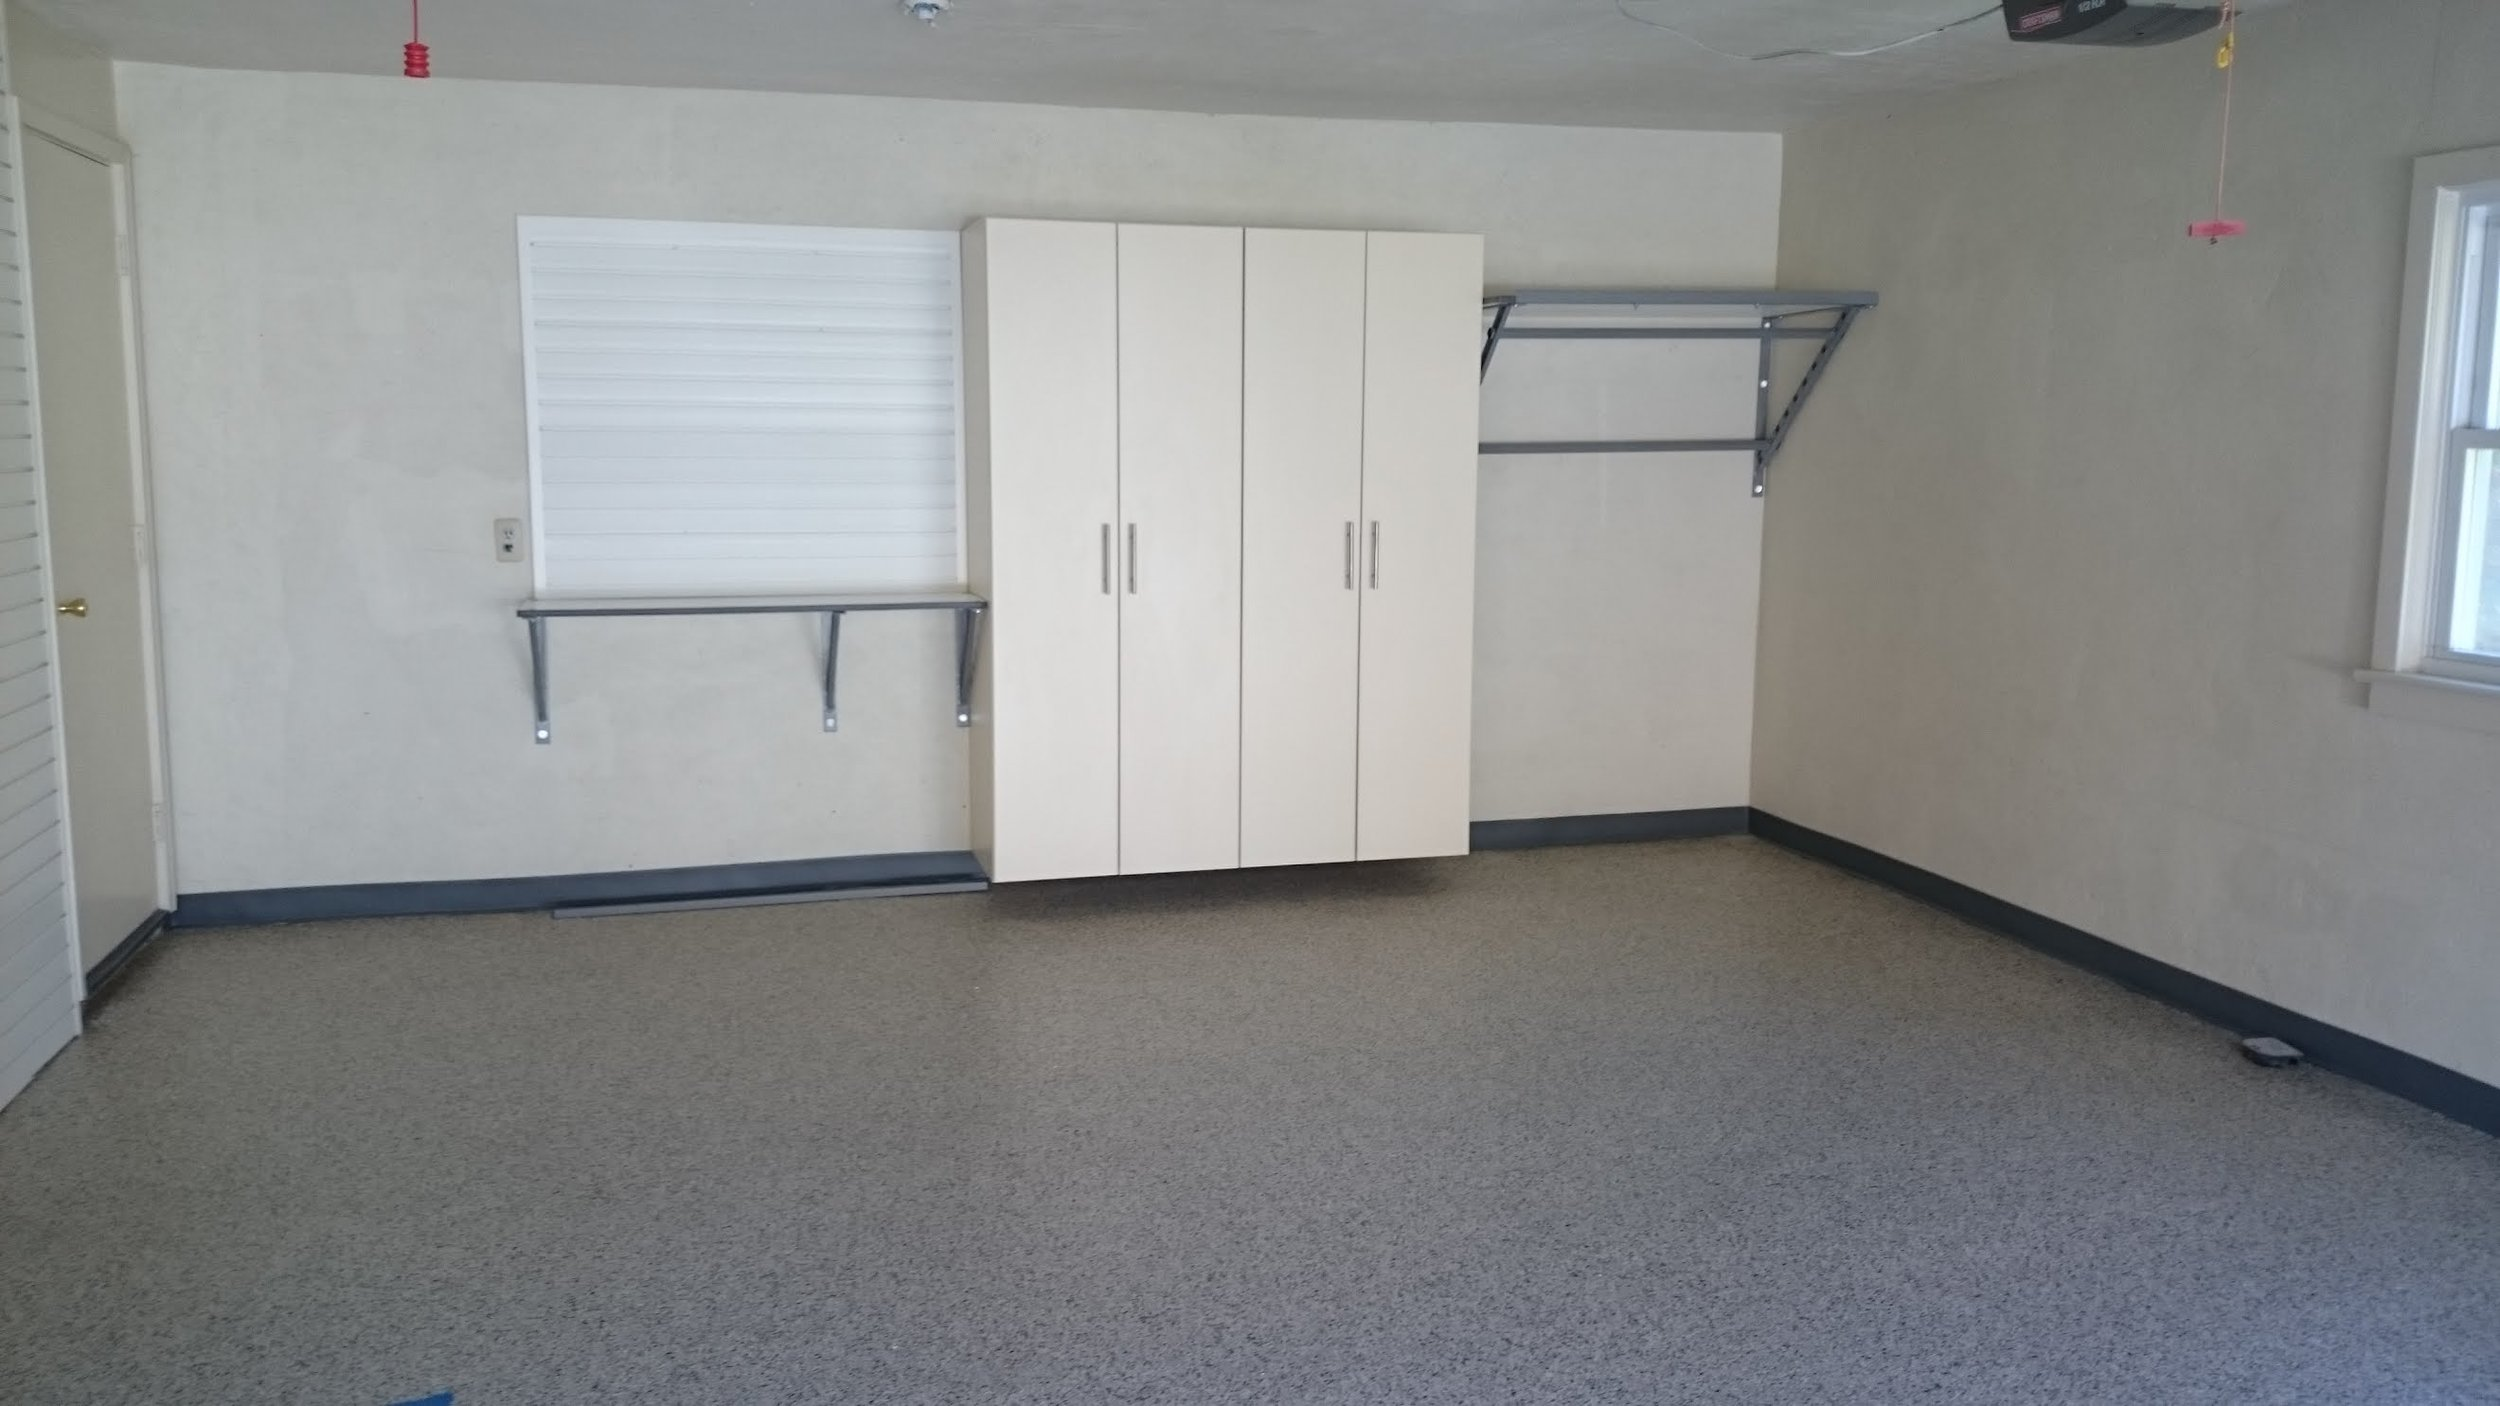 Garage concrete floor with polyurea / POLYASPARTIC coating with garage storage cabinets and garage shelves example